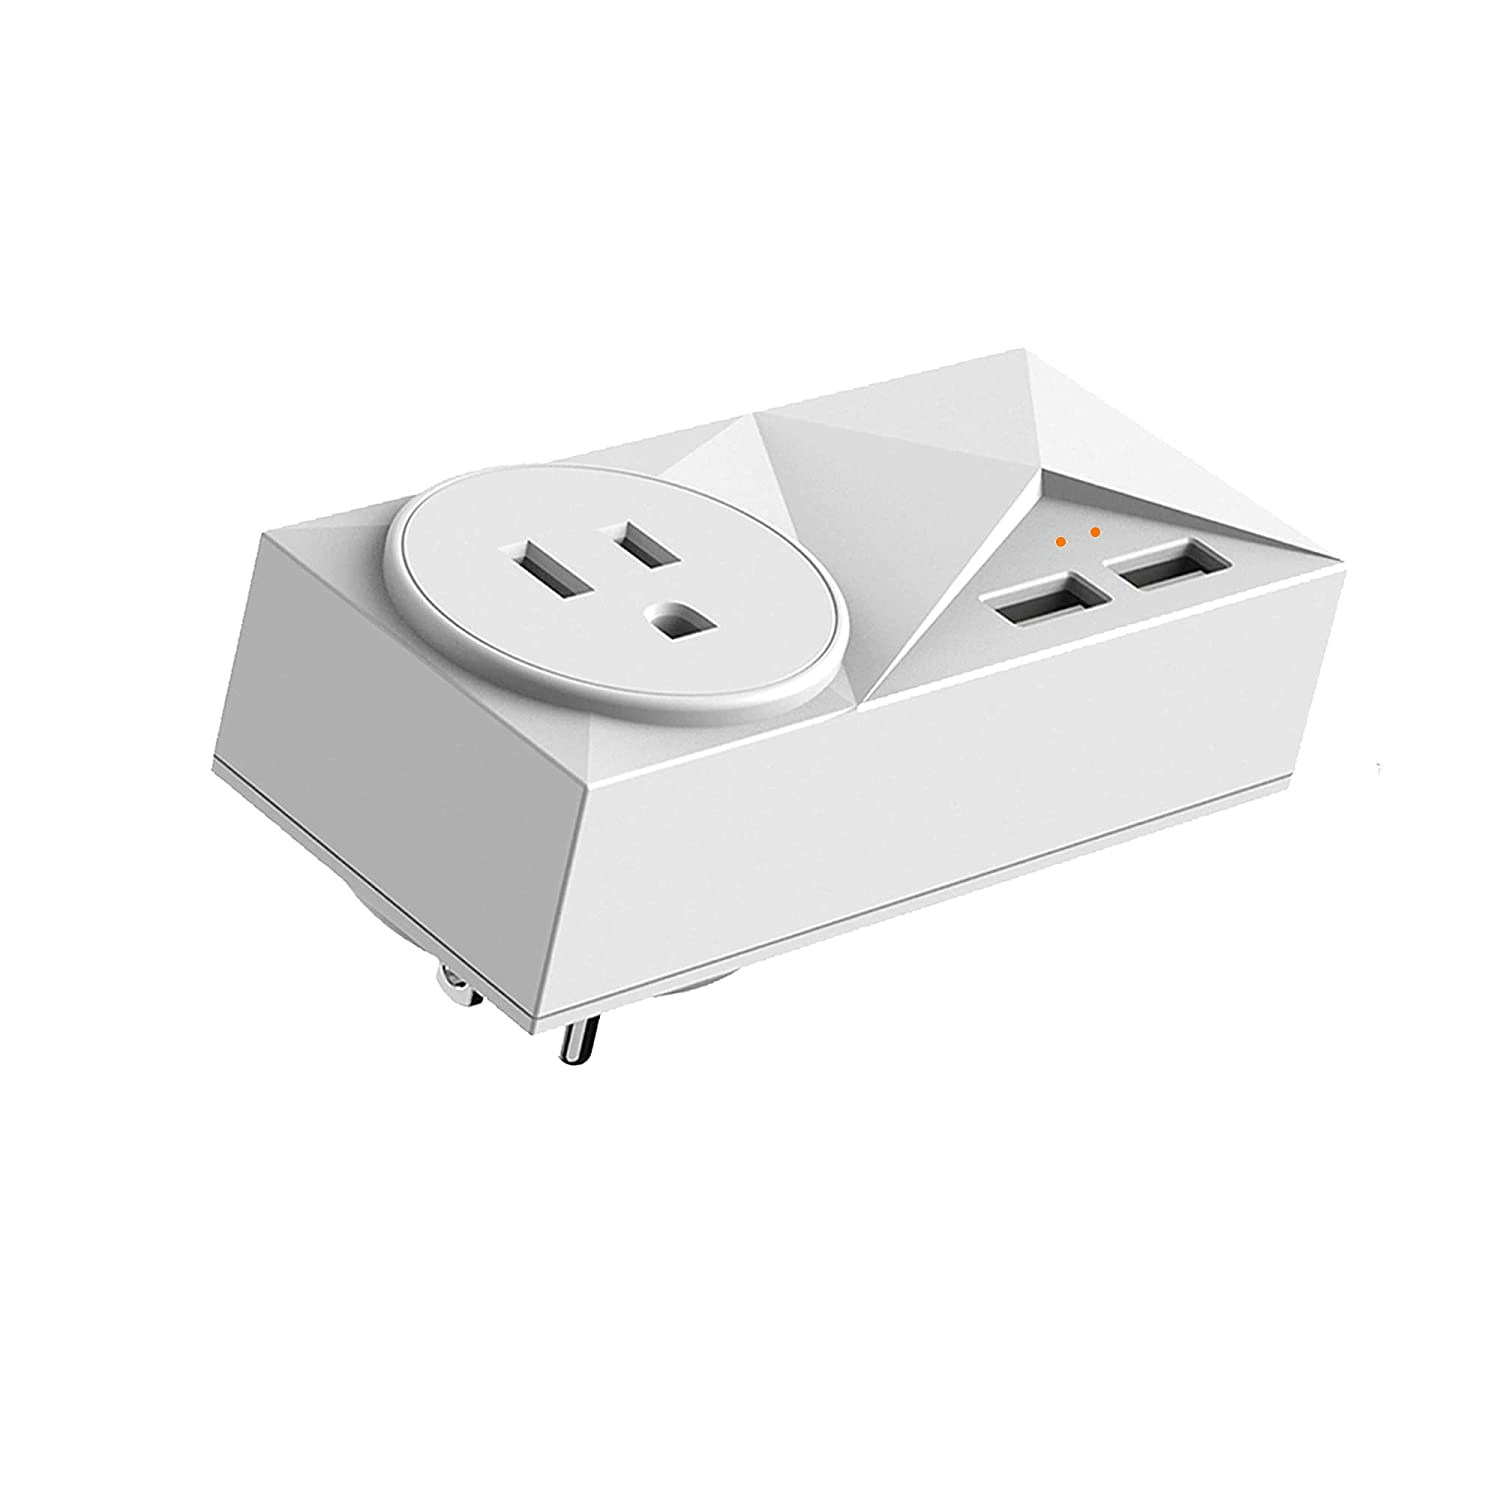 Wi-Fi Plugs for Alexa, 16A Smart Outlet with 2 USB Ports, Work with Alexa Echo,Google Home, SmartThings for Voice Control/Remote Control, Timer Plug, 2.4GHz